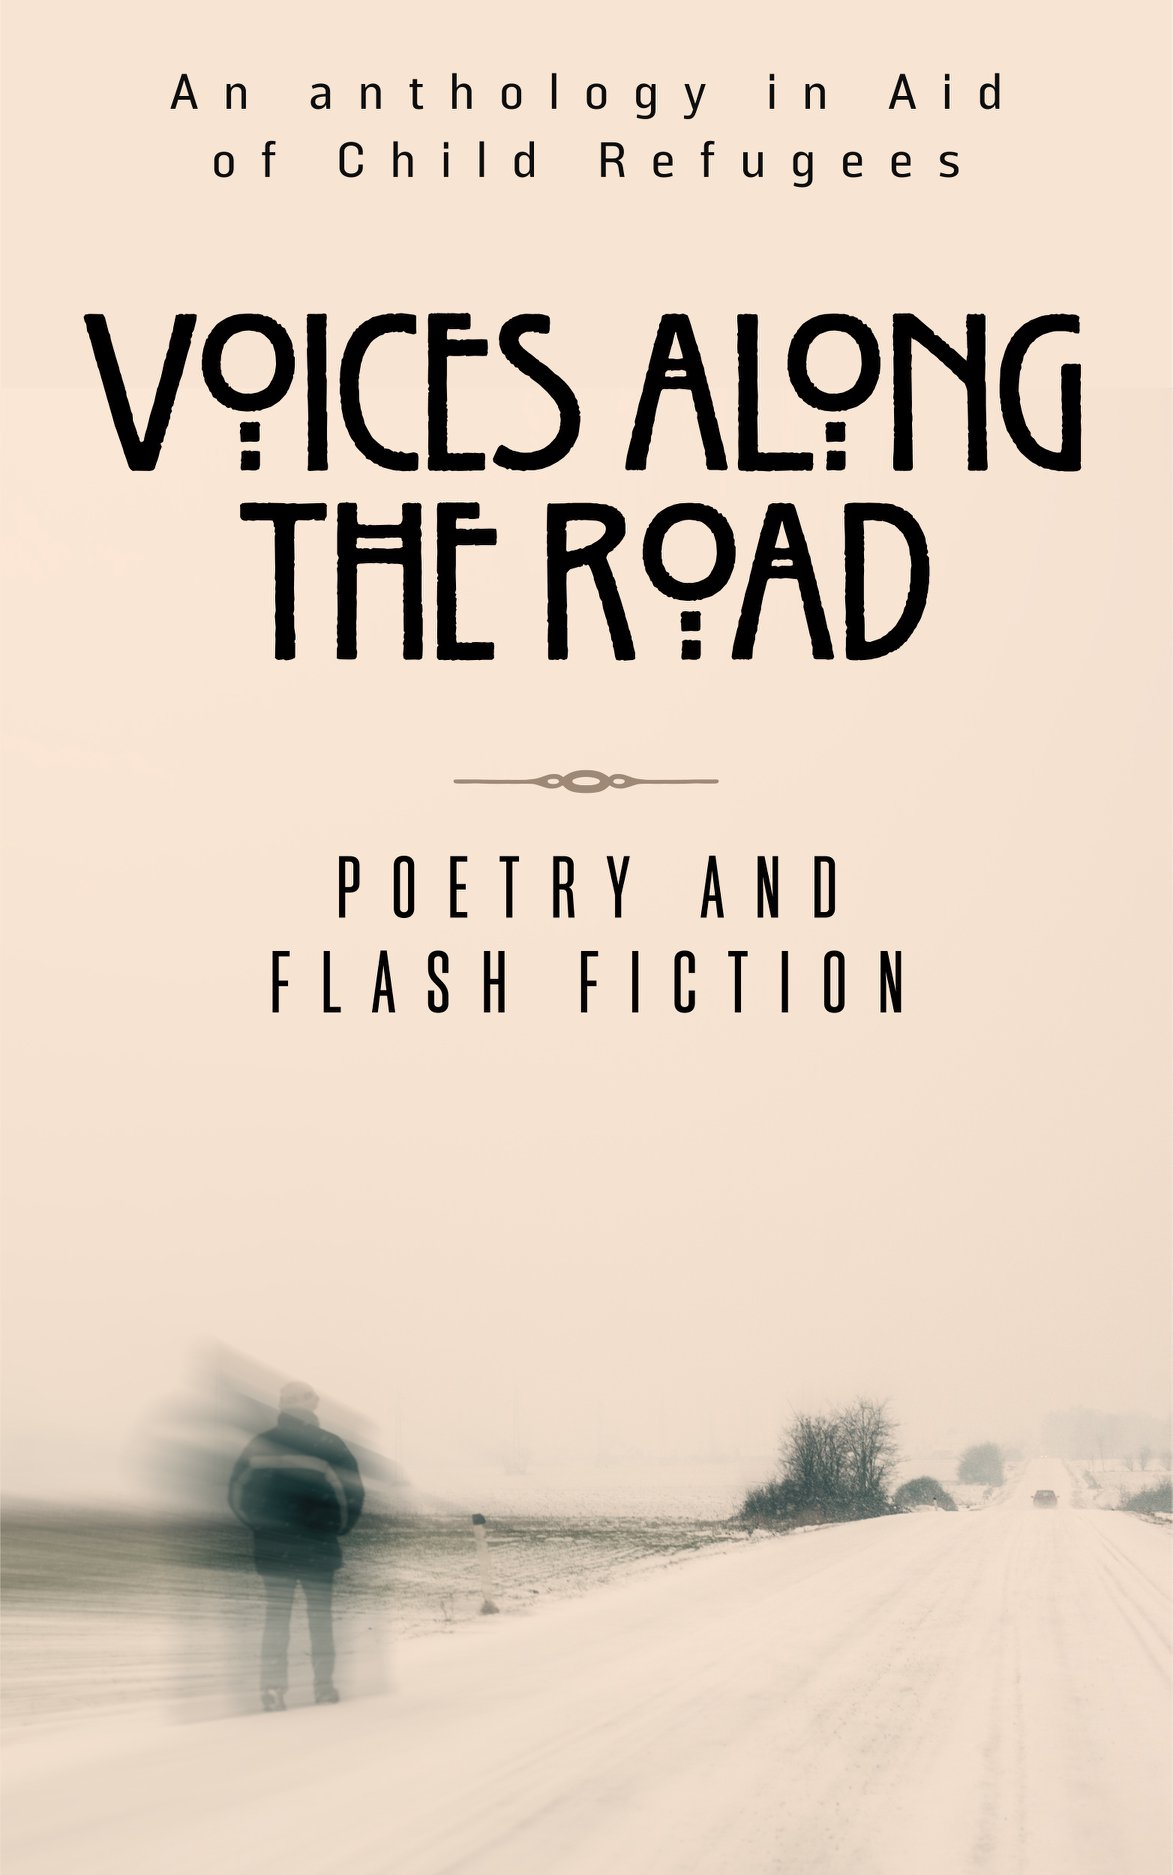 Voices along the road